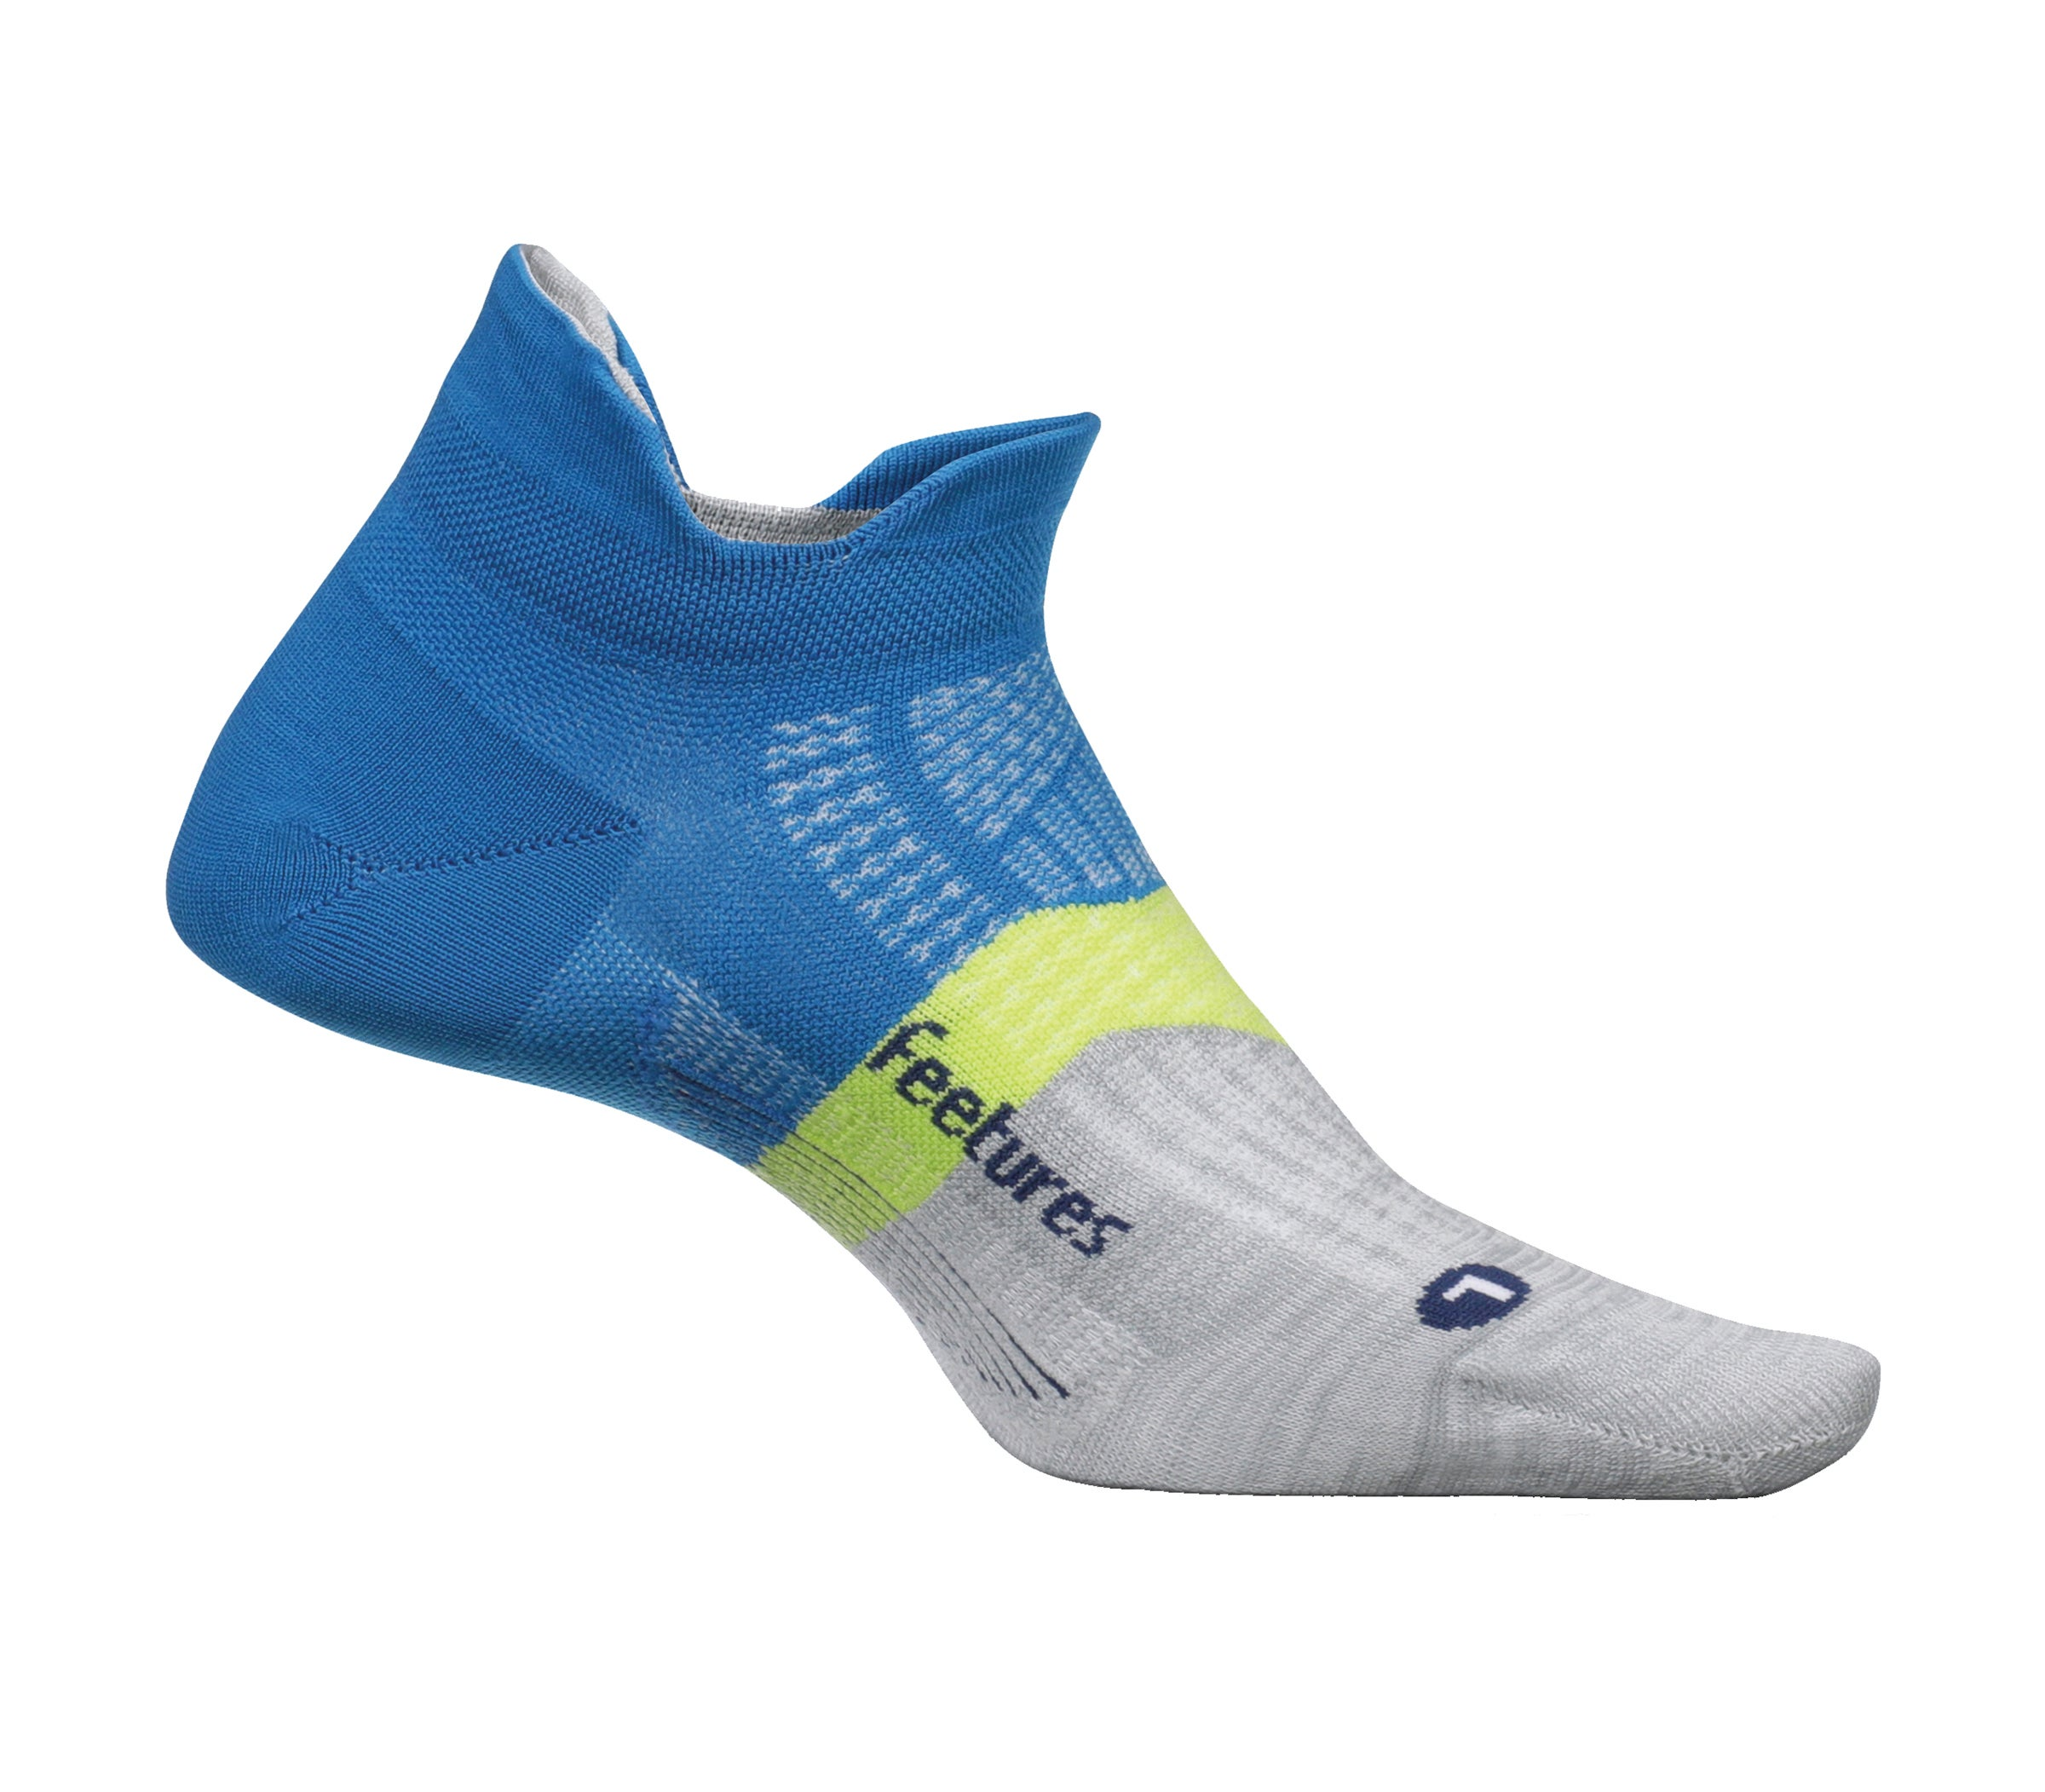 Features ultra-thin running socks